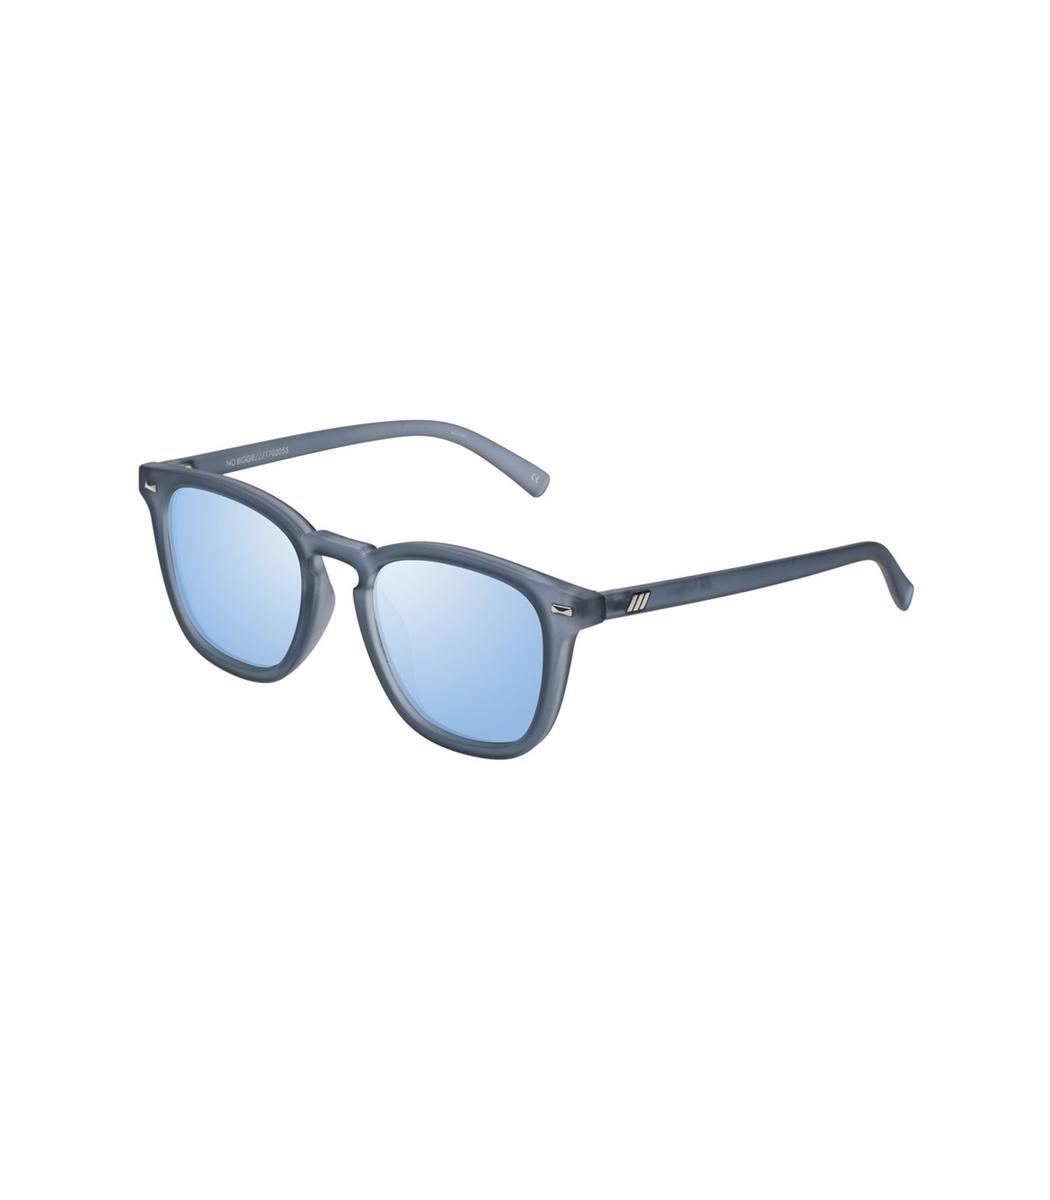 0d2375795db6 Lyst - Le Specs Slate Rubber No Biggie Sunglasses